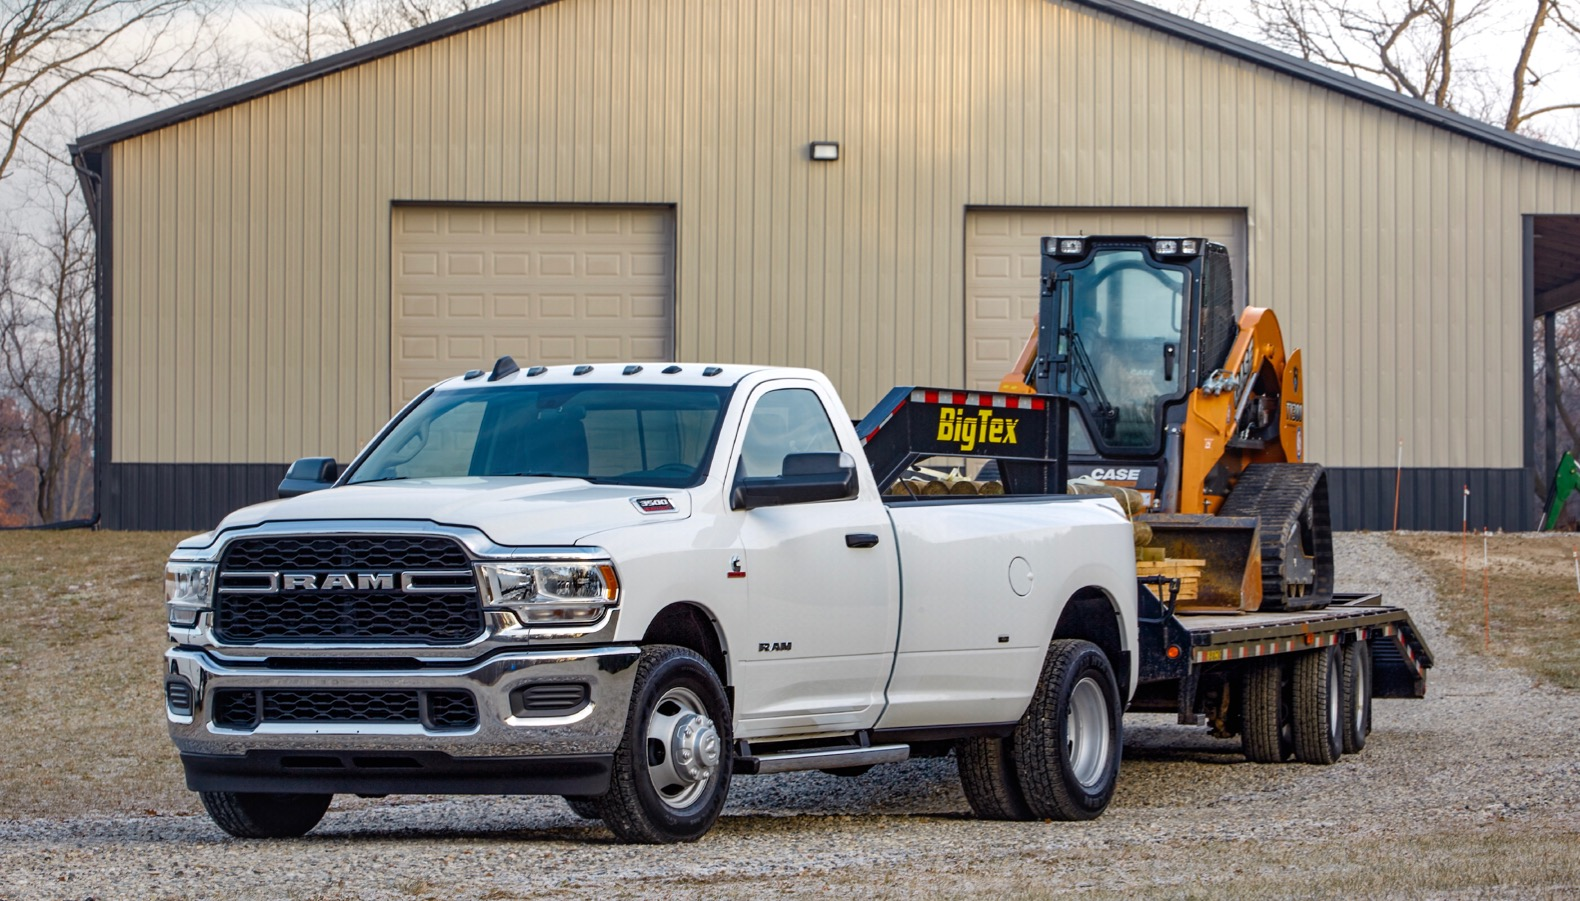 Ford Escape Towing Capacity >> 2019 Ram 2500 and 3500 Heavy Duty pickups arrive in ...